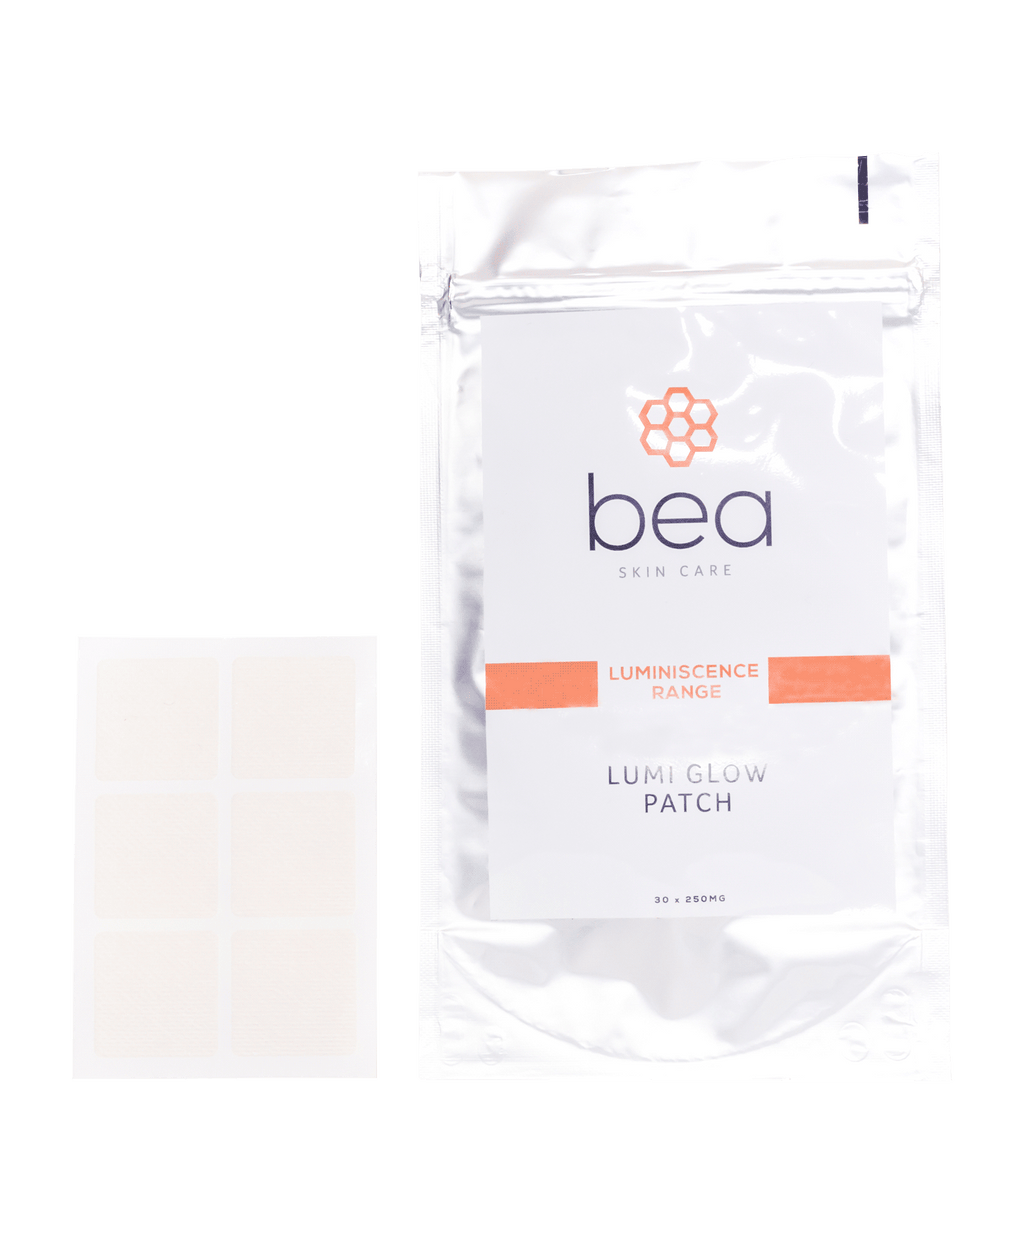 Lumi Glow Patches - 30 Patches Patches bea Skin Care